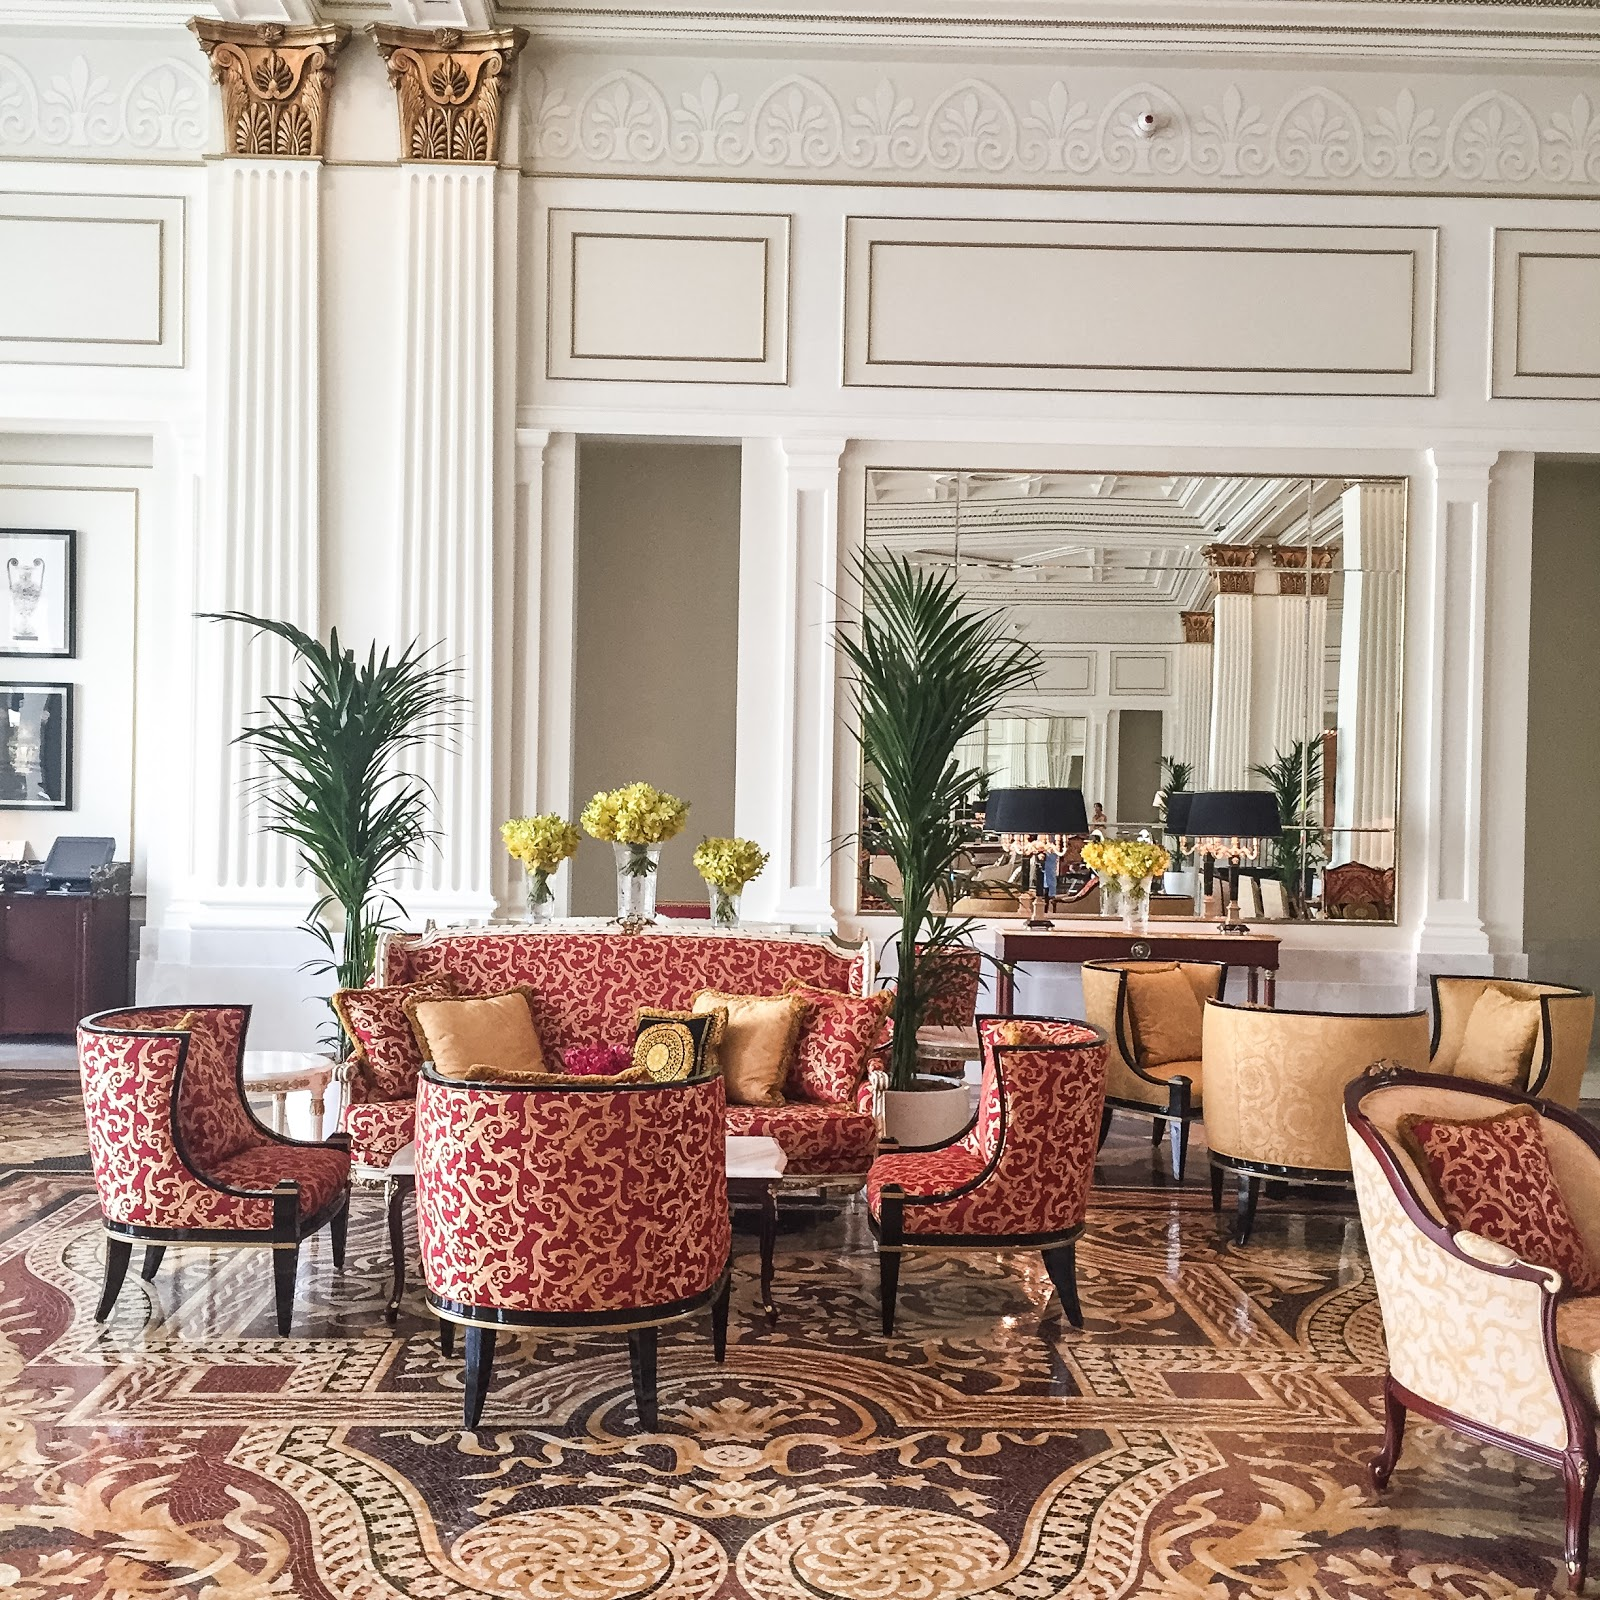 hotel review palazzo versace dubai fashion daydreams uk situated on the rather quiet dubai creek palazzo versace has an imposing presence on the waterfront styled after a 16th century italian palace